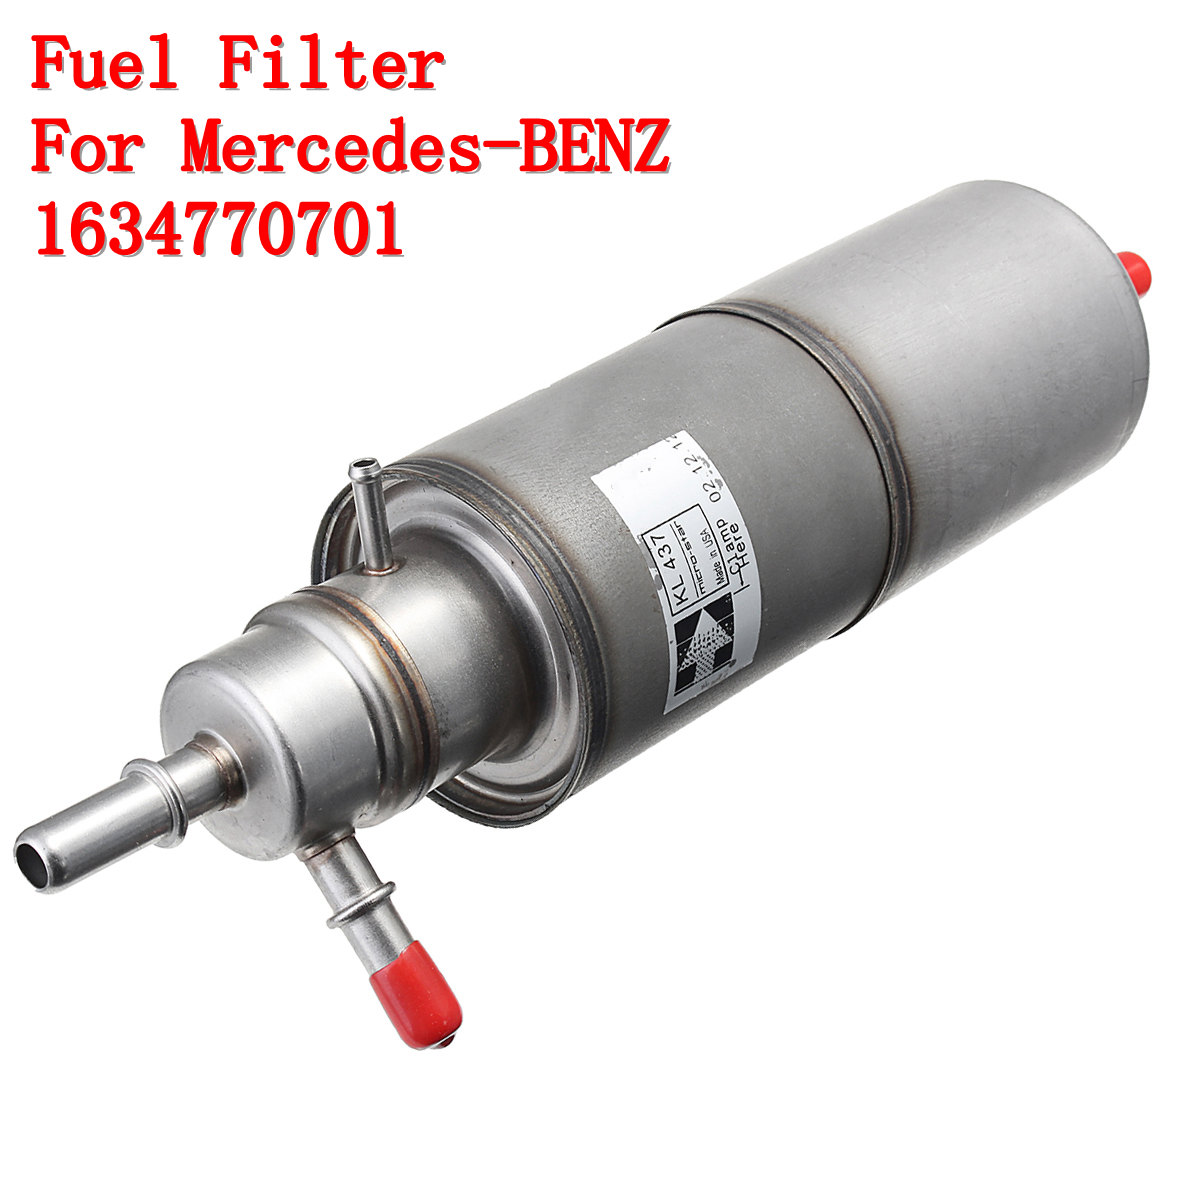 Car Oil Fuel Filter Pressure Regulator For Mercedes Benz Ml55 04 14 0l Frieghtliner Amg Ml320 Ml430 1634770701 In Filters From Automobiles Motorcycles On